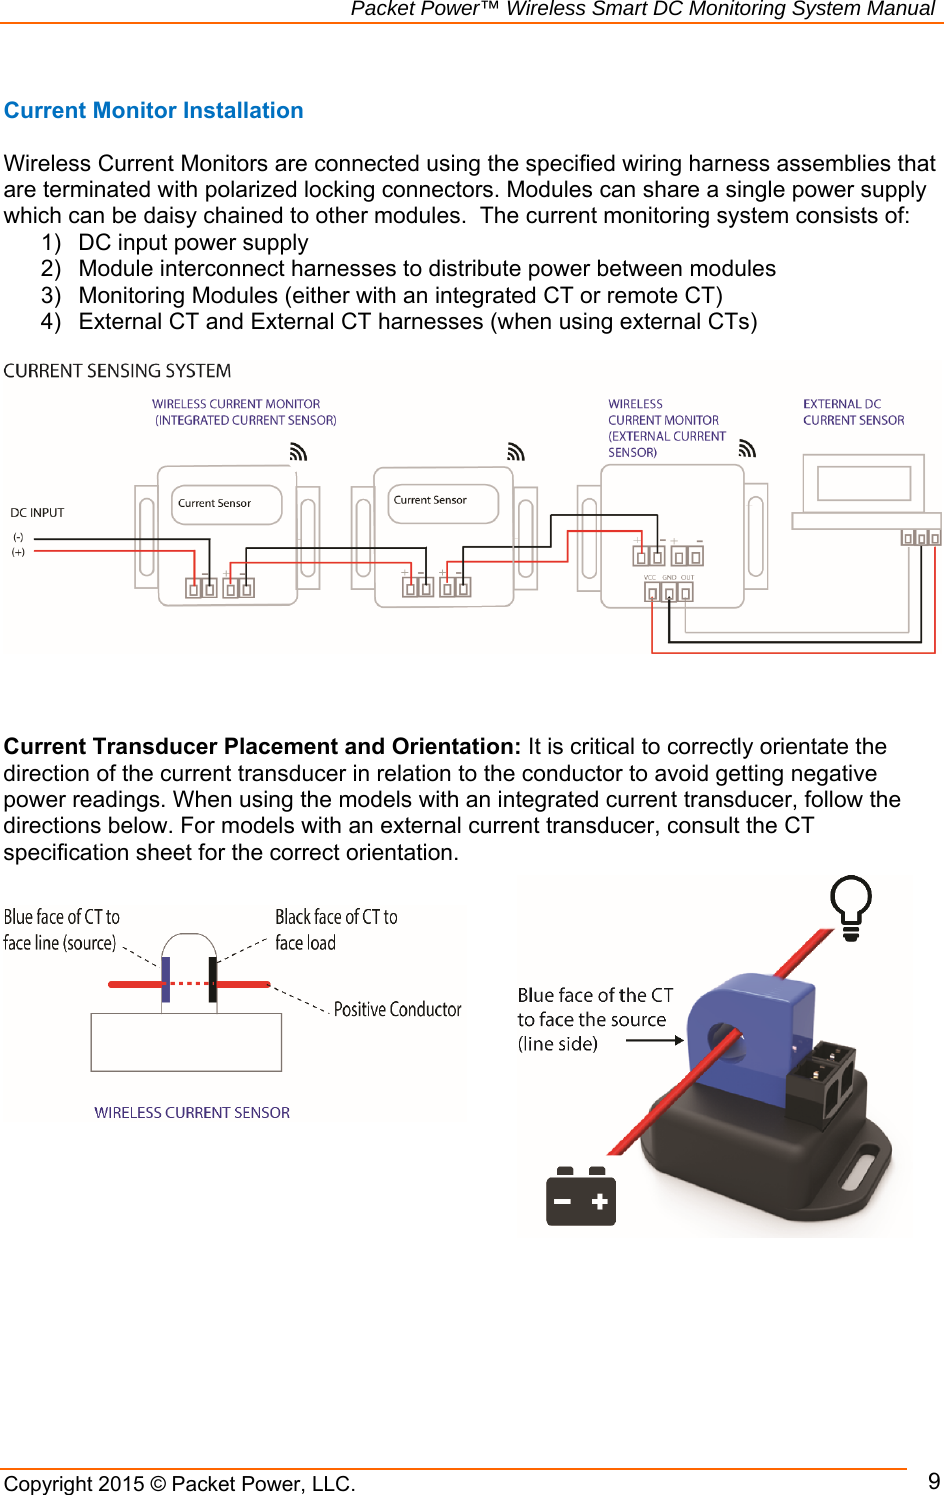 Packet Power P5c Wireless Monitor User Manual Dc Current Wiring Diagram Smart Monitoring System Copyright 2015 Llc